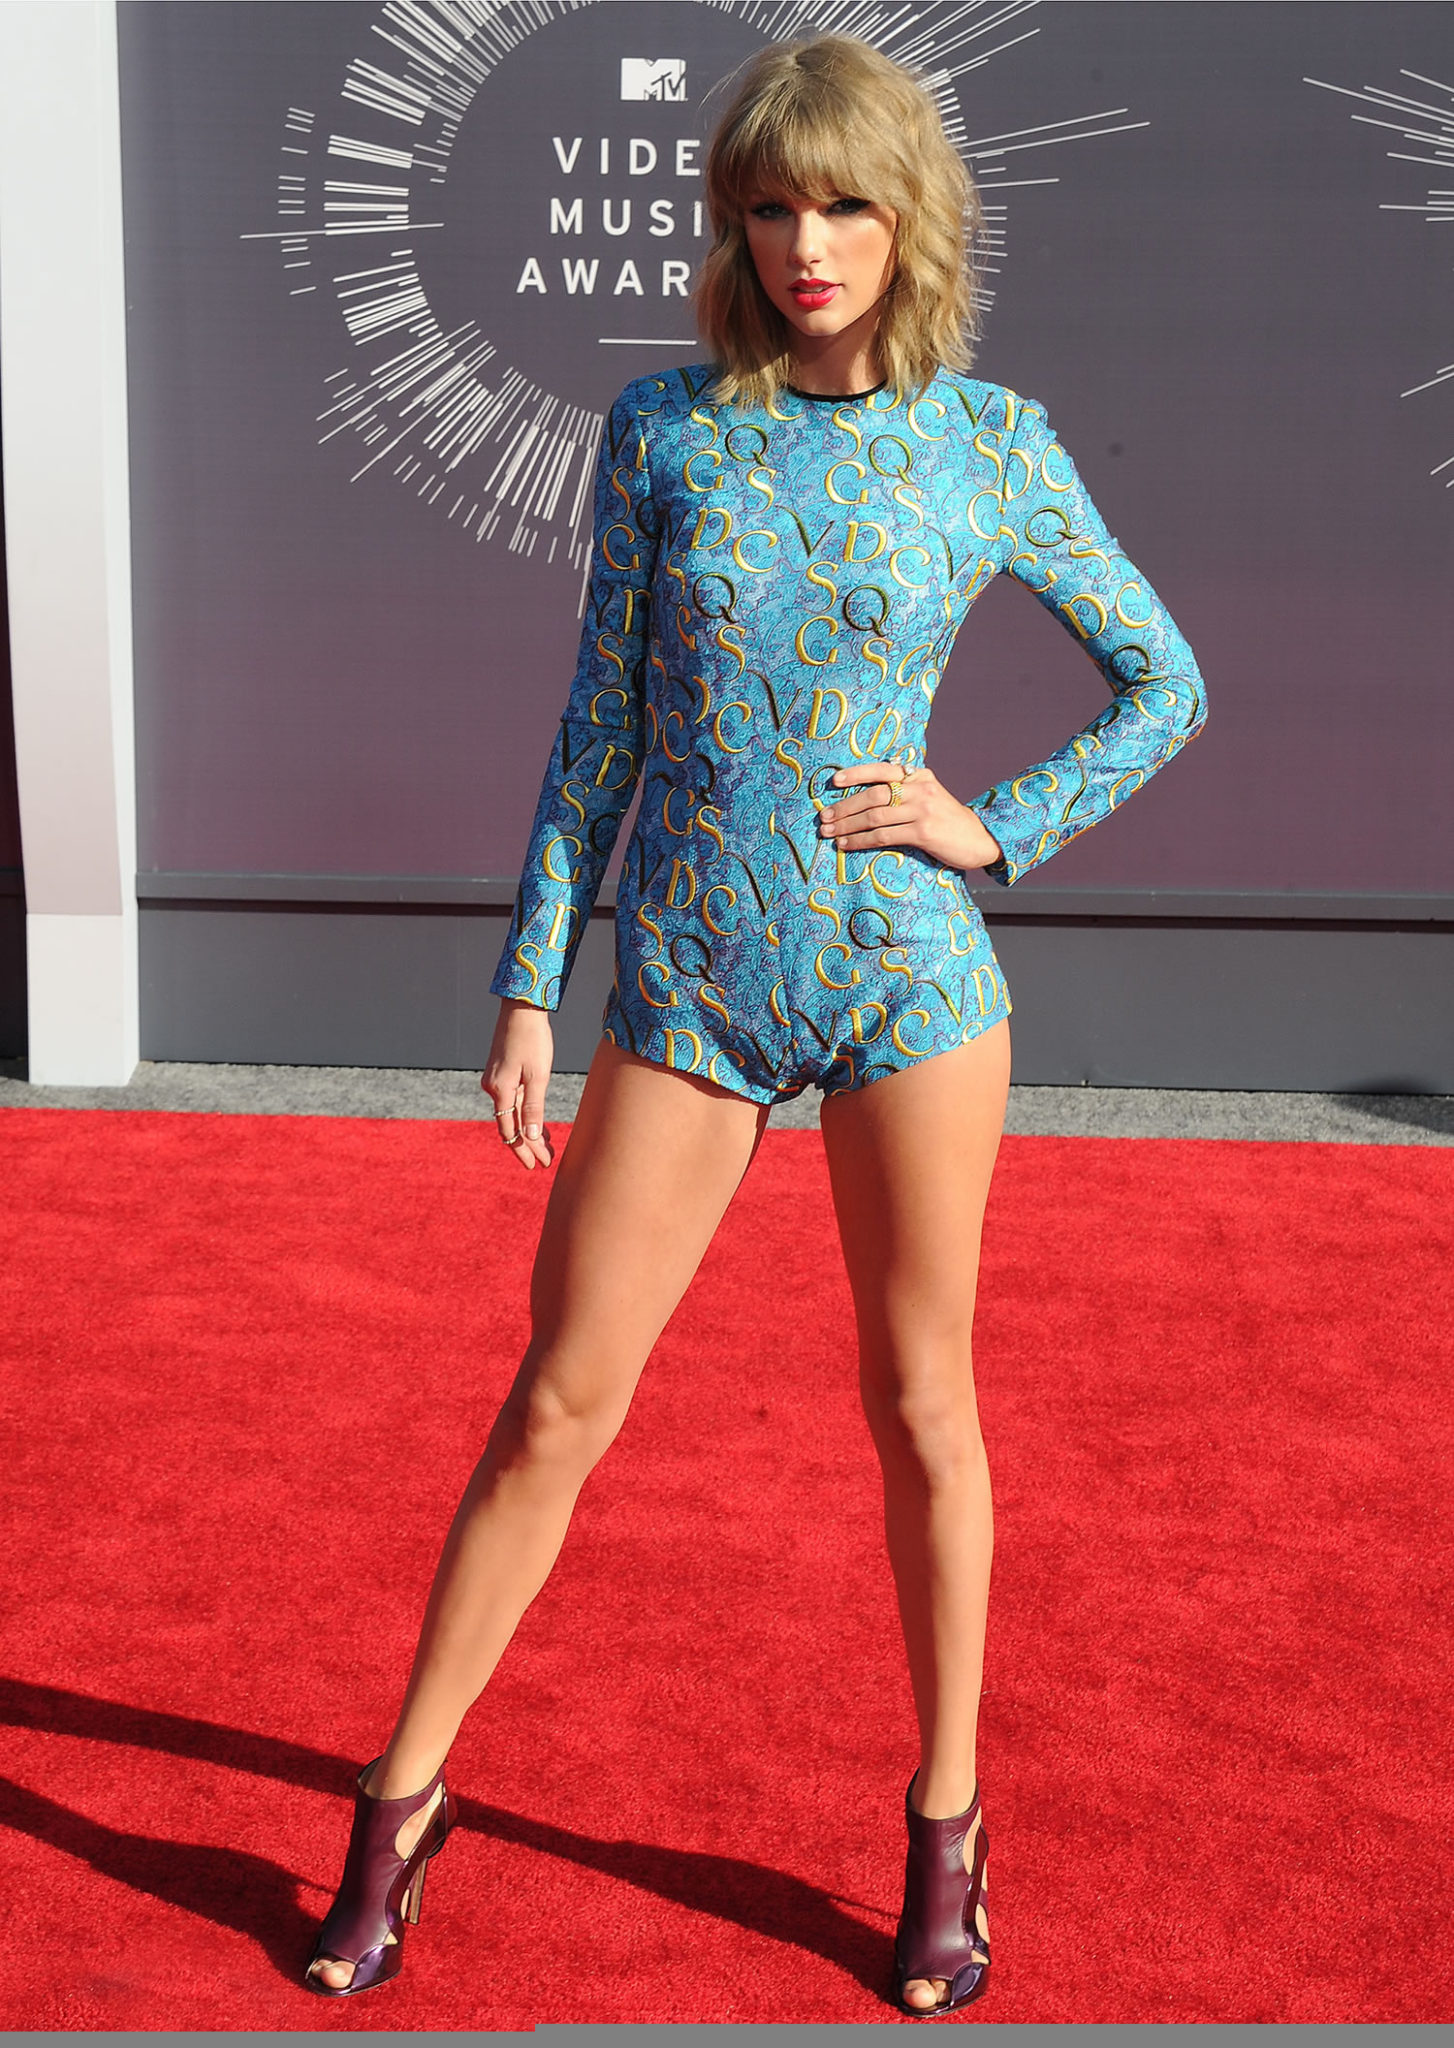 taylor-swift-at-2014-mtv-video-music-awards-4